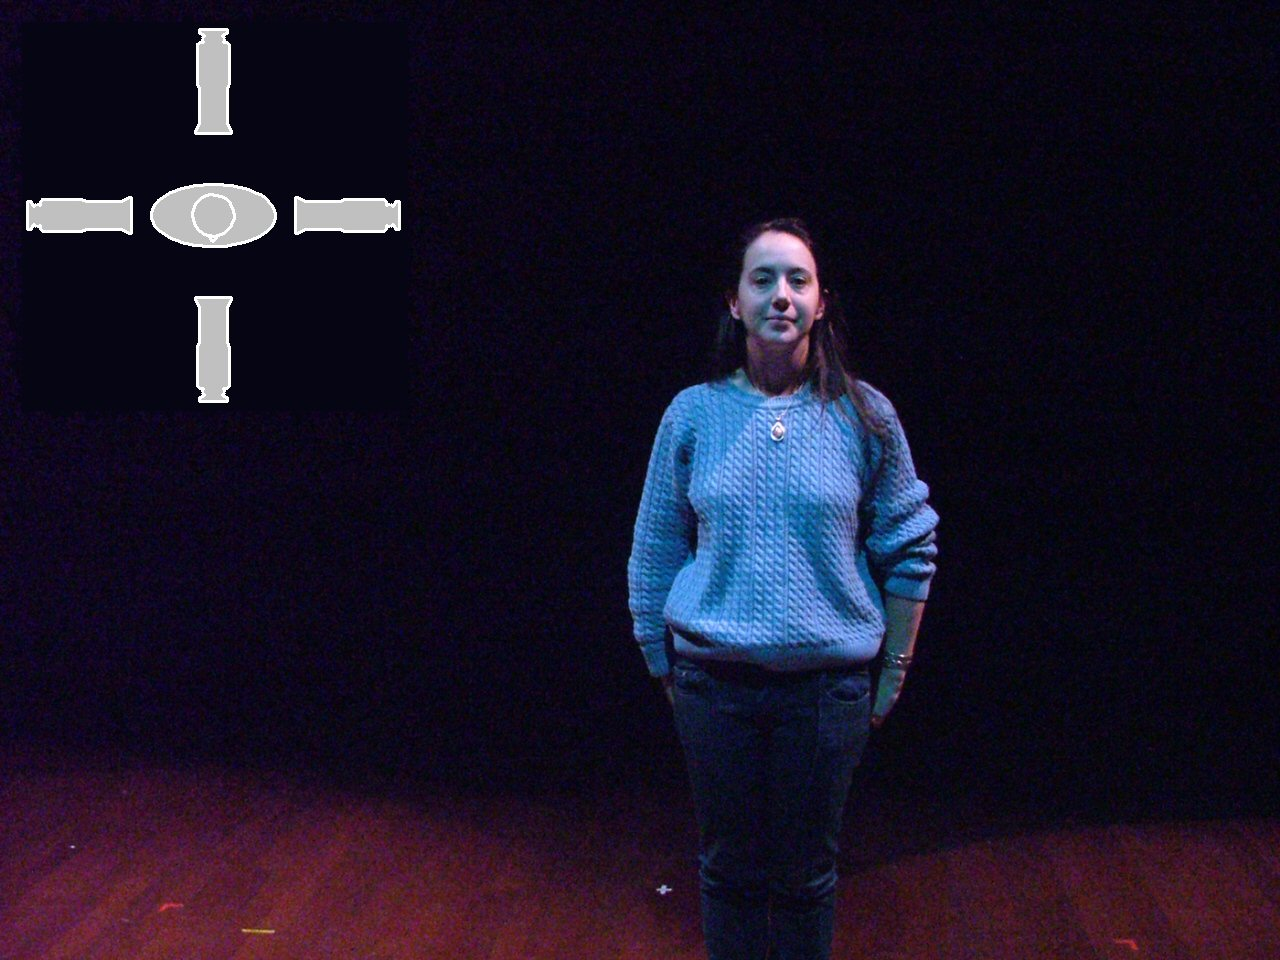 The Stage Lighting Guide, an introduction to stage lighting techniques and terminologies for schools, amateur theatre groups and beginners.